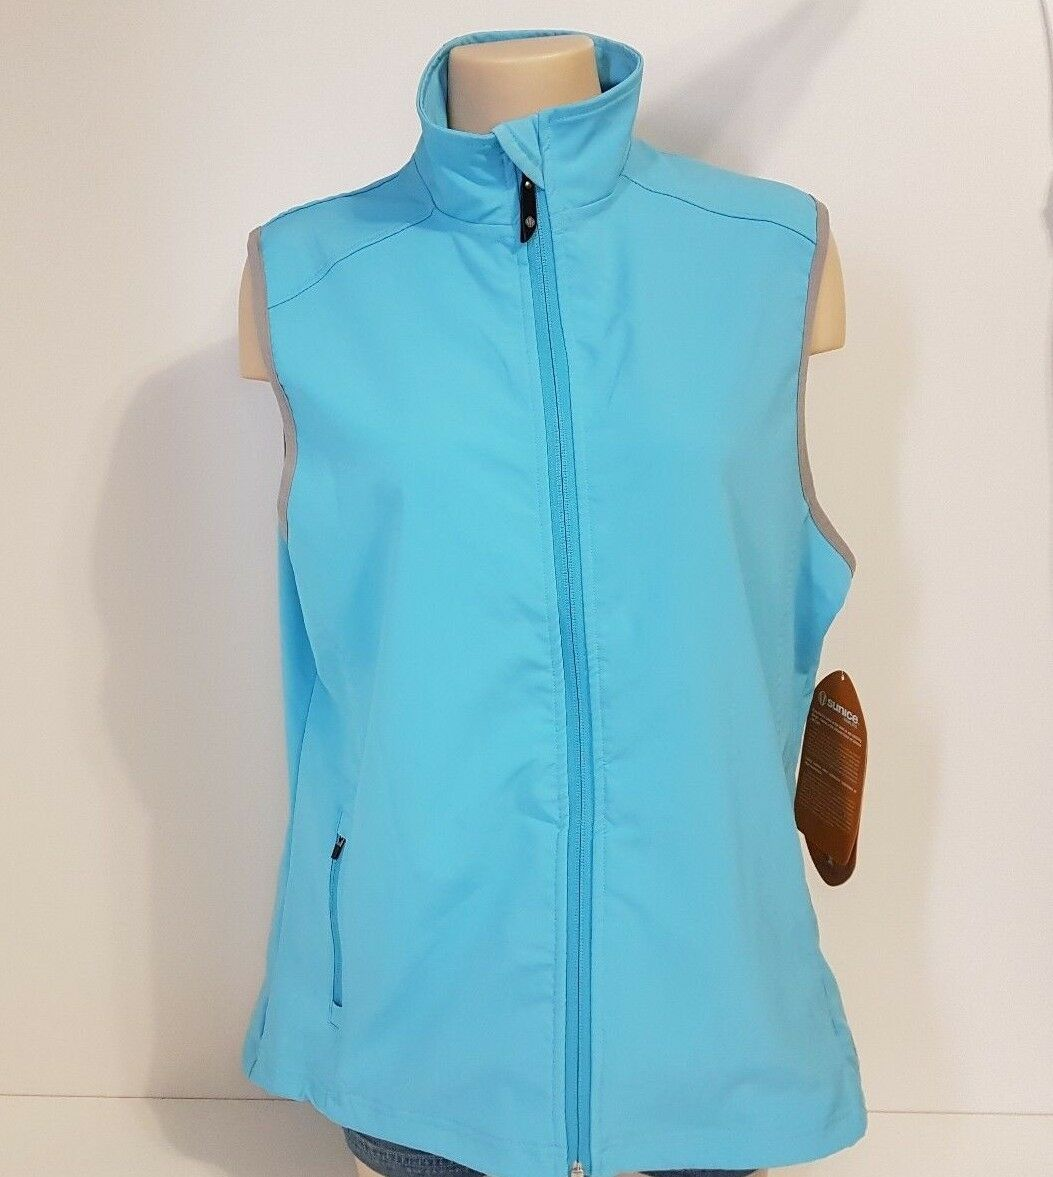 Sunice Vest Six Layers Science Sport Style Zip Front Crystal Crystal Crystal bluee Womens XL NEW a9c8e0